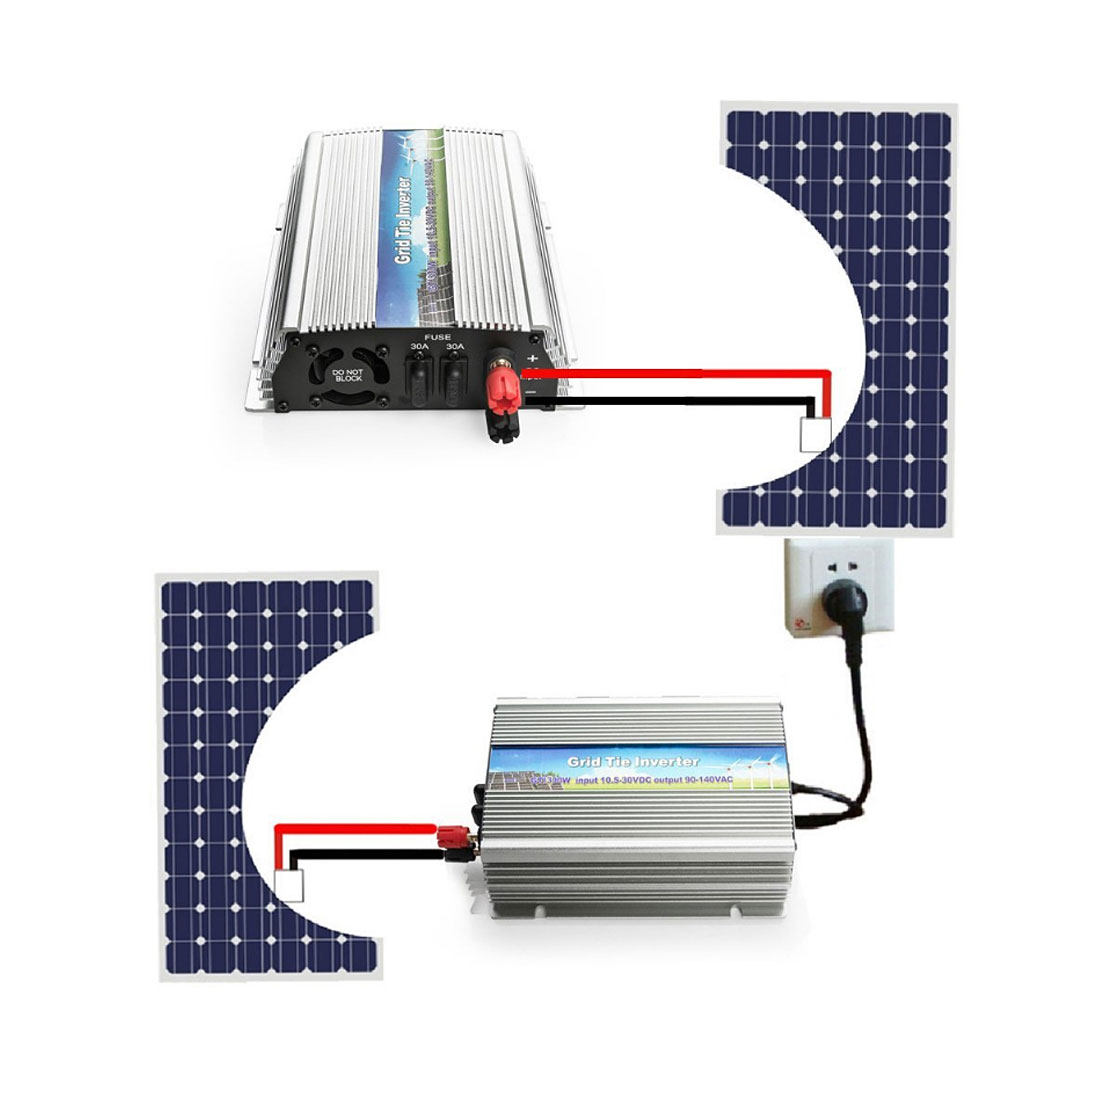 US WV 300W Grid Tie Inverter MPPT For Solar Panel Stackable Pure Sine Wave - image 5 of 7